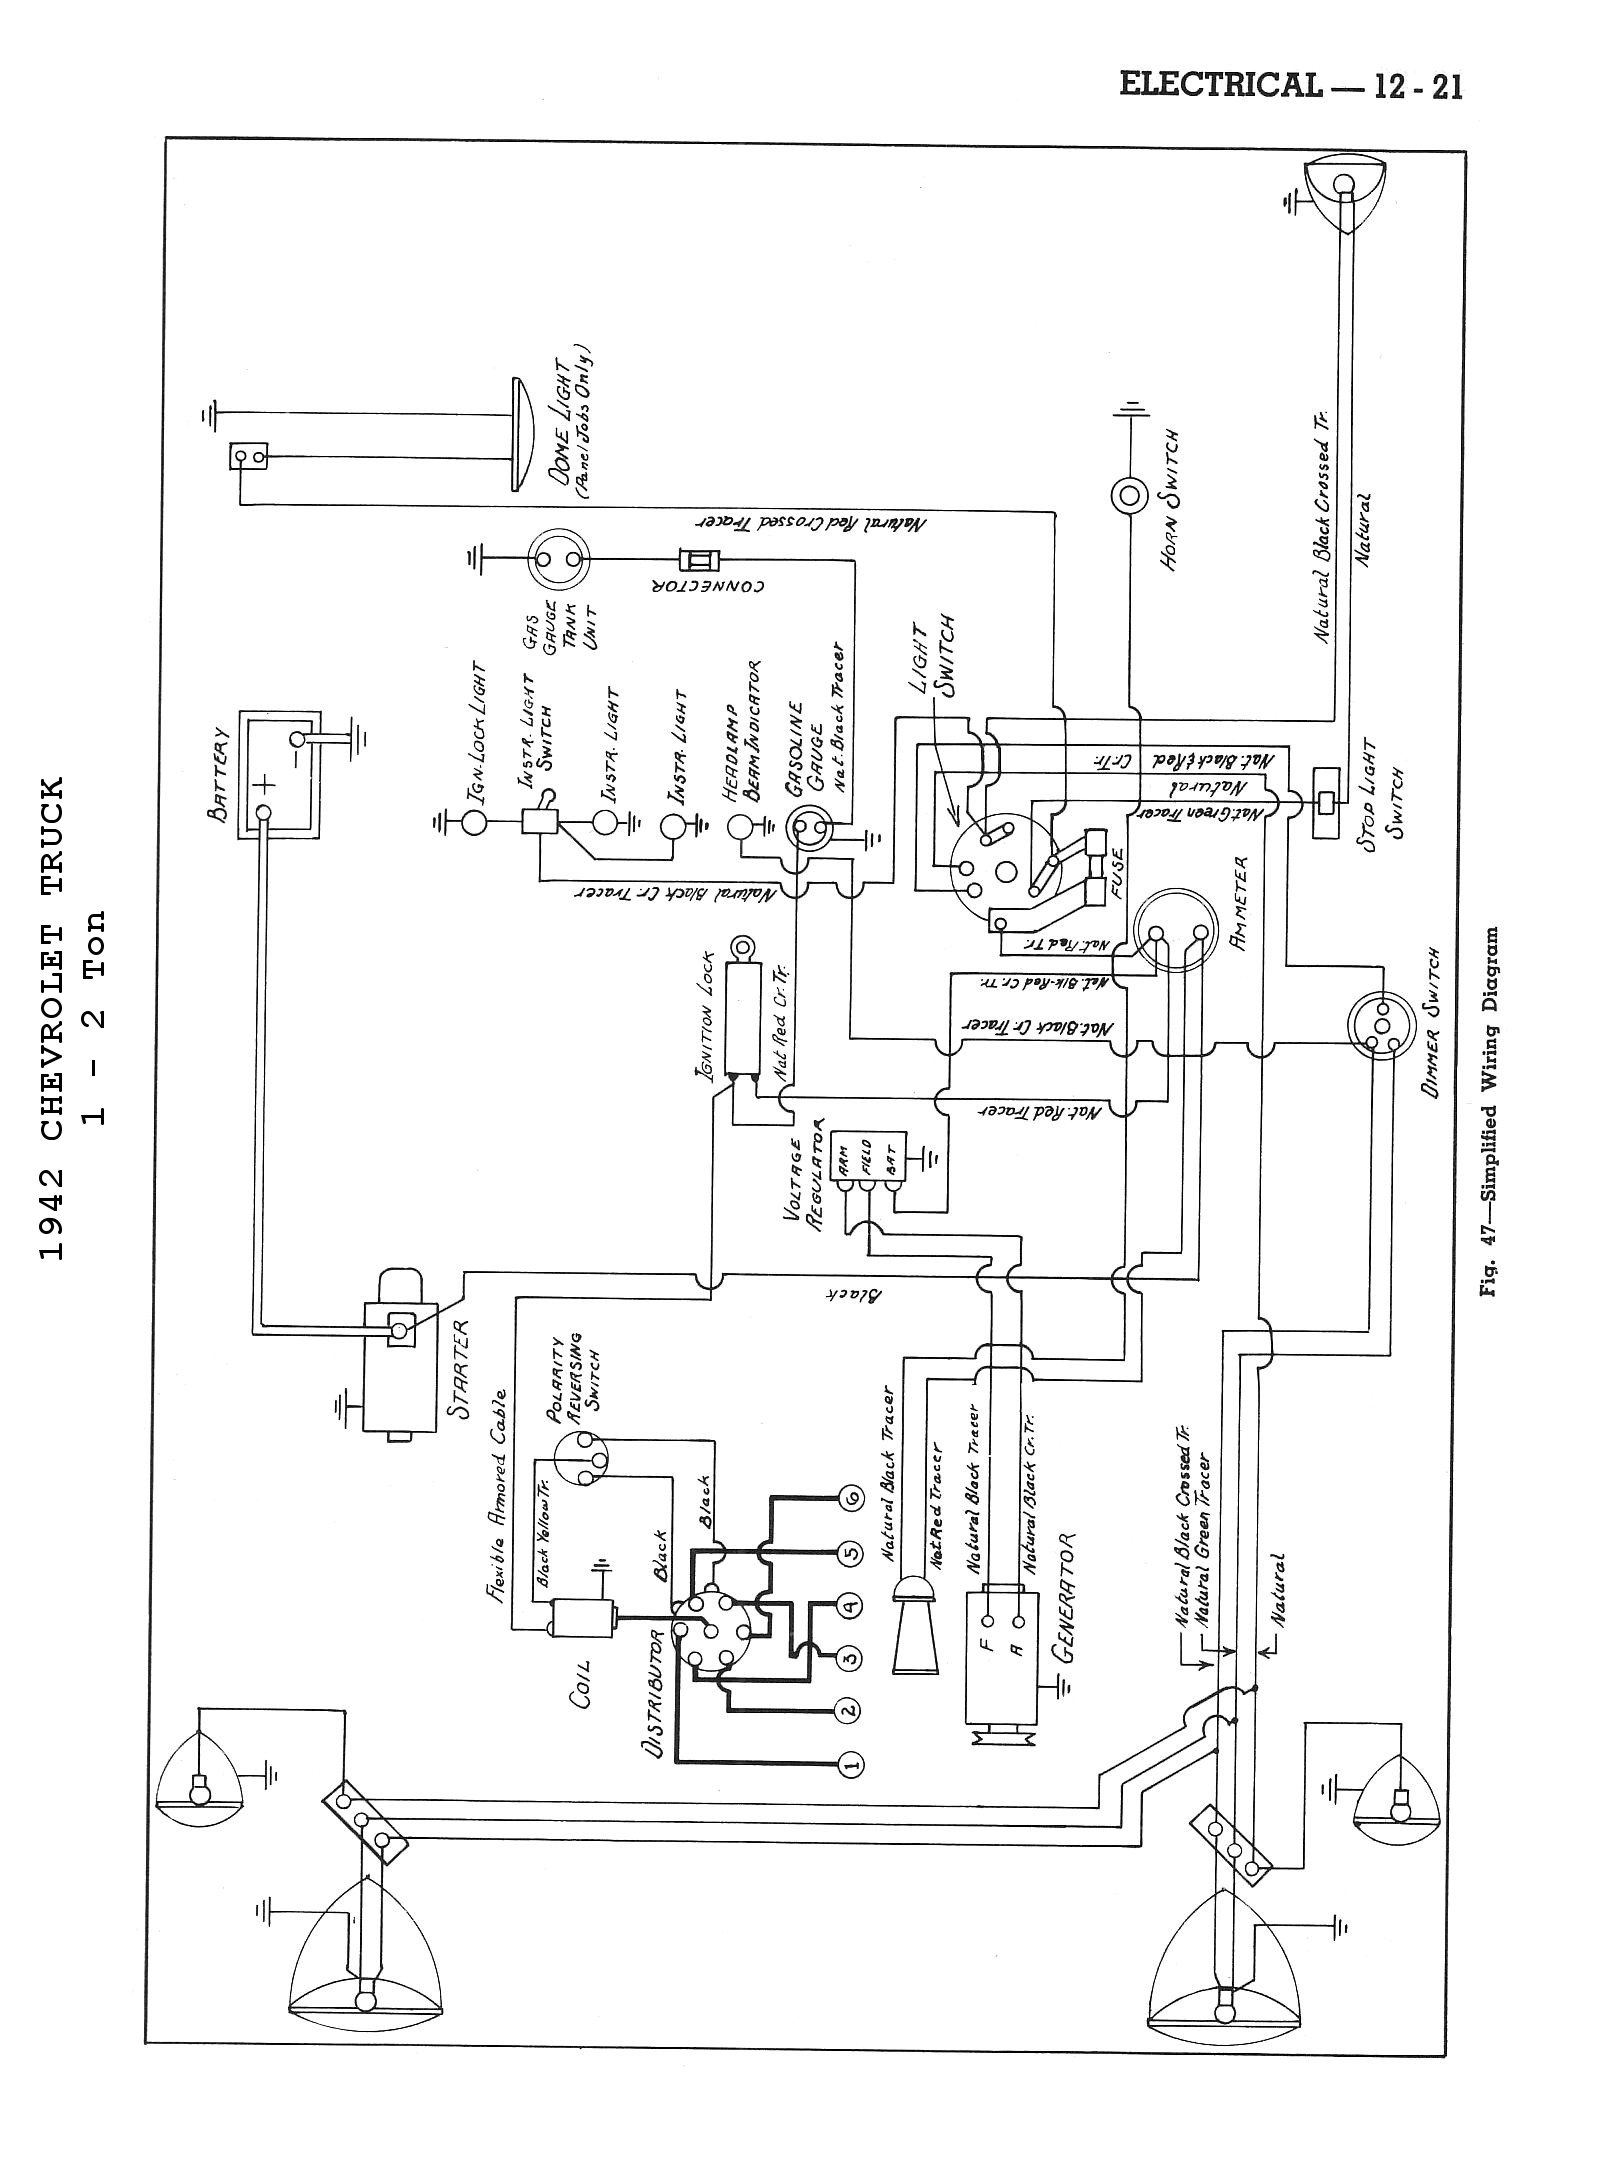 hight resolution of 1957 chevy truck wiring wiring diagram centrechevy wiring diagrams 1957 chevy truck